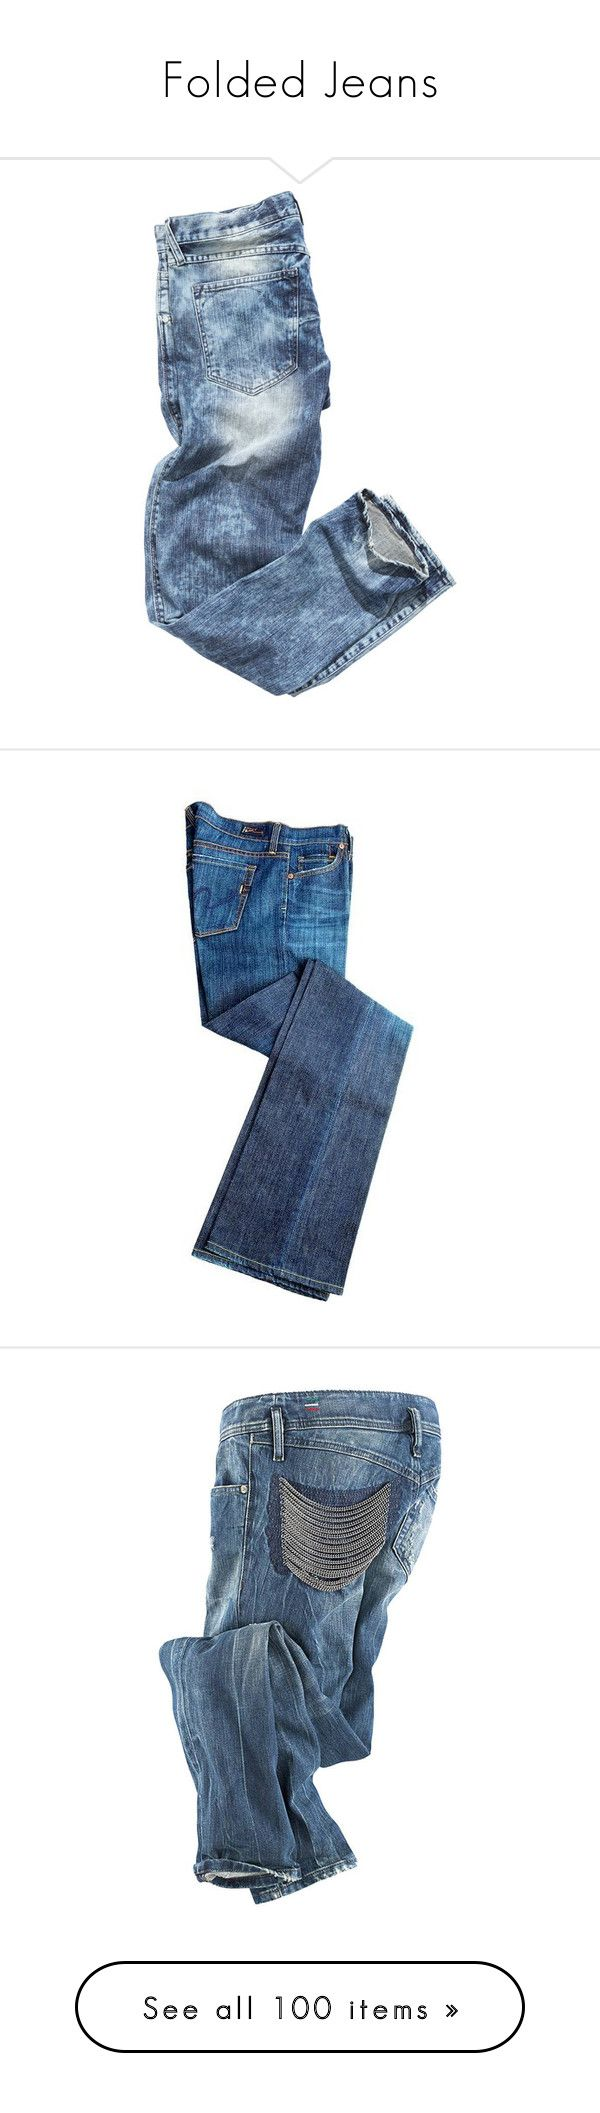 """Folded Jeans"" by bellamarie ❤ liked on Polyvore featuring jeans, pants, bottoms, trousers, fillers, calças, blue jeans, pantalones, diesel jeans and diesel skinny jeans"